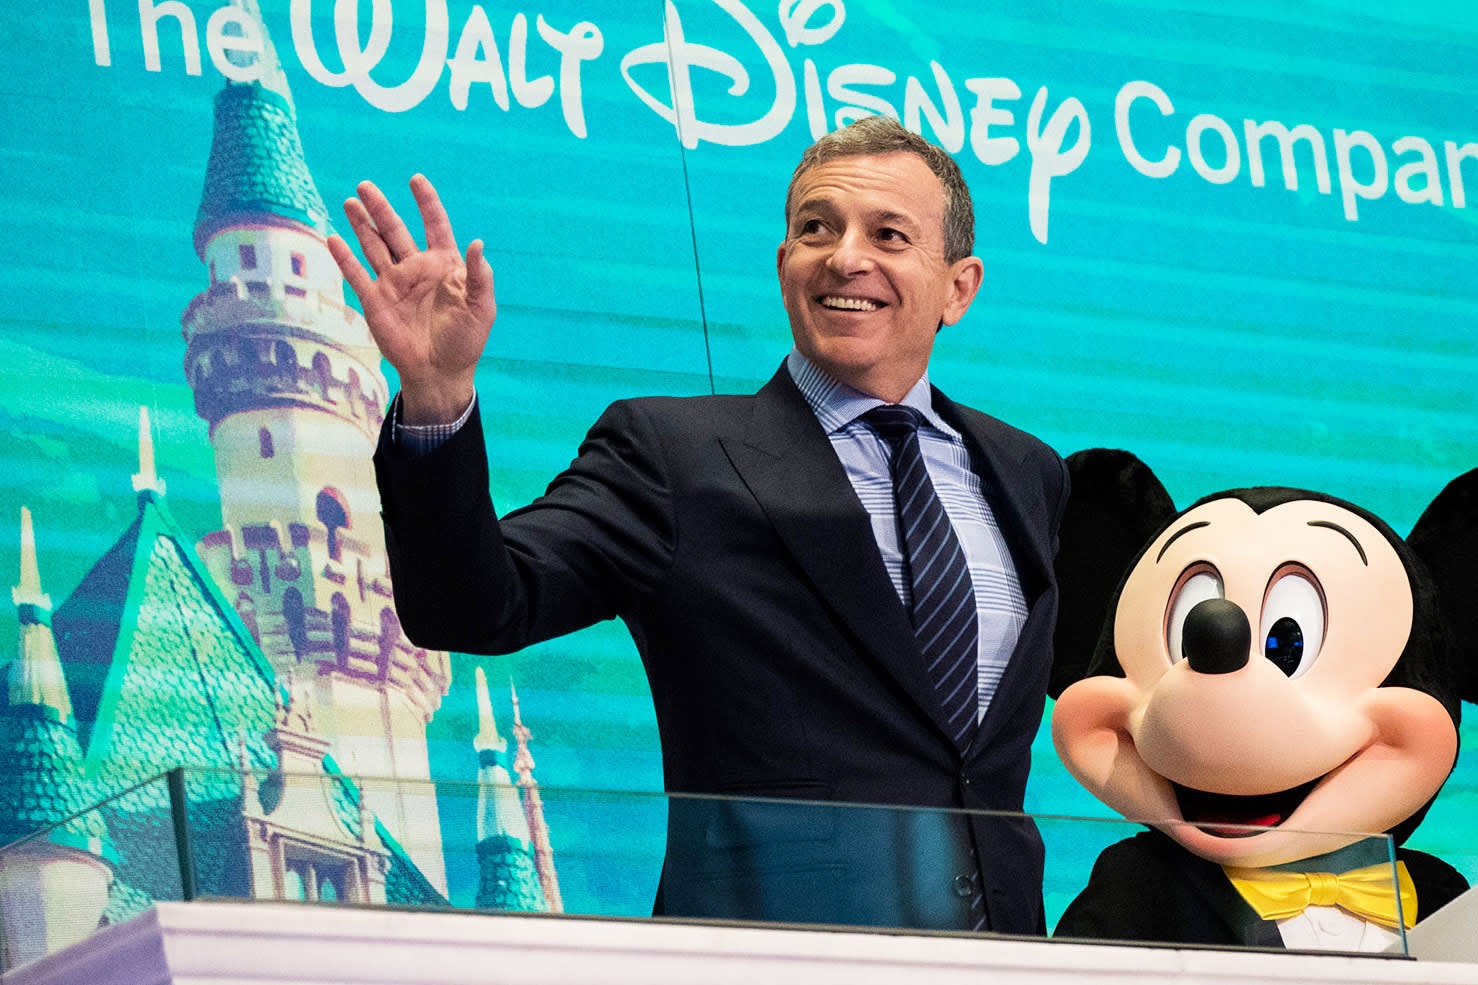 Disney CEO Bob Iger: 'People just don't want to follow someone who is a pessimist'